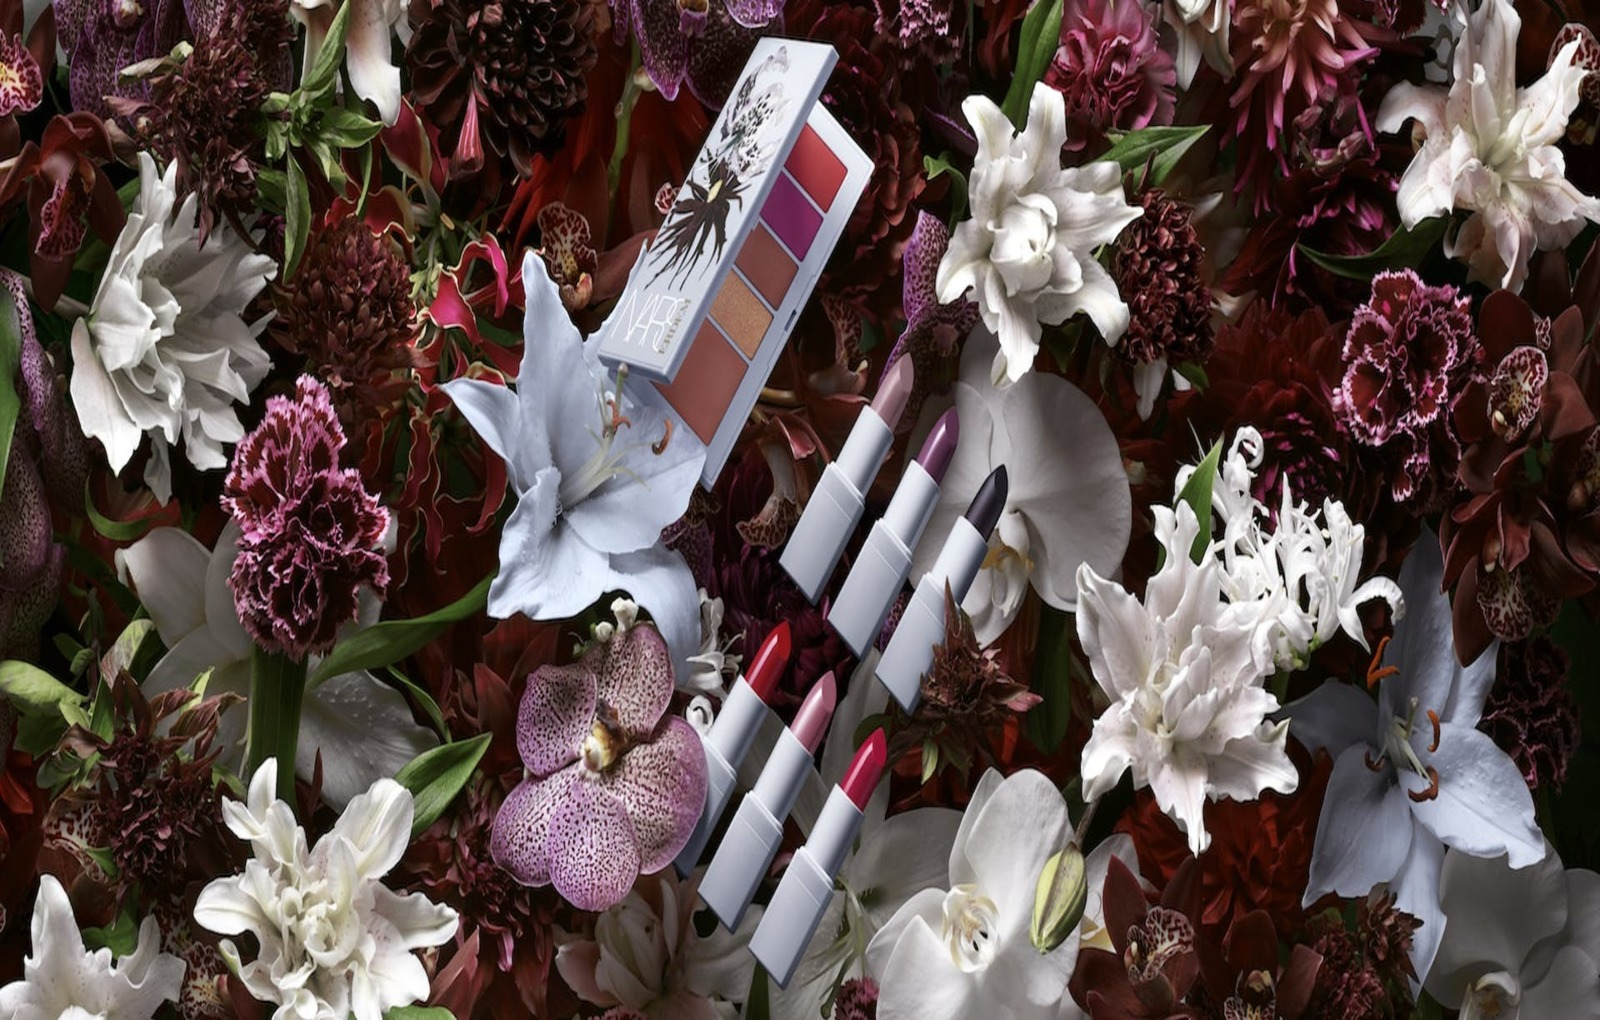 1519288594892162-Erdem-for-NARS-Strange-Flowers-Collection-Stylized-Image-3